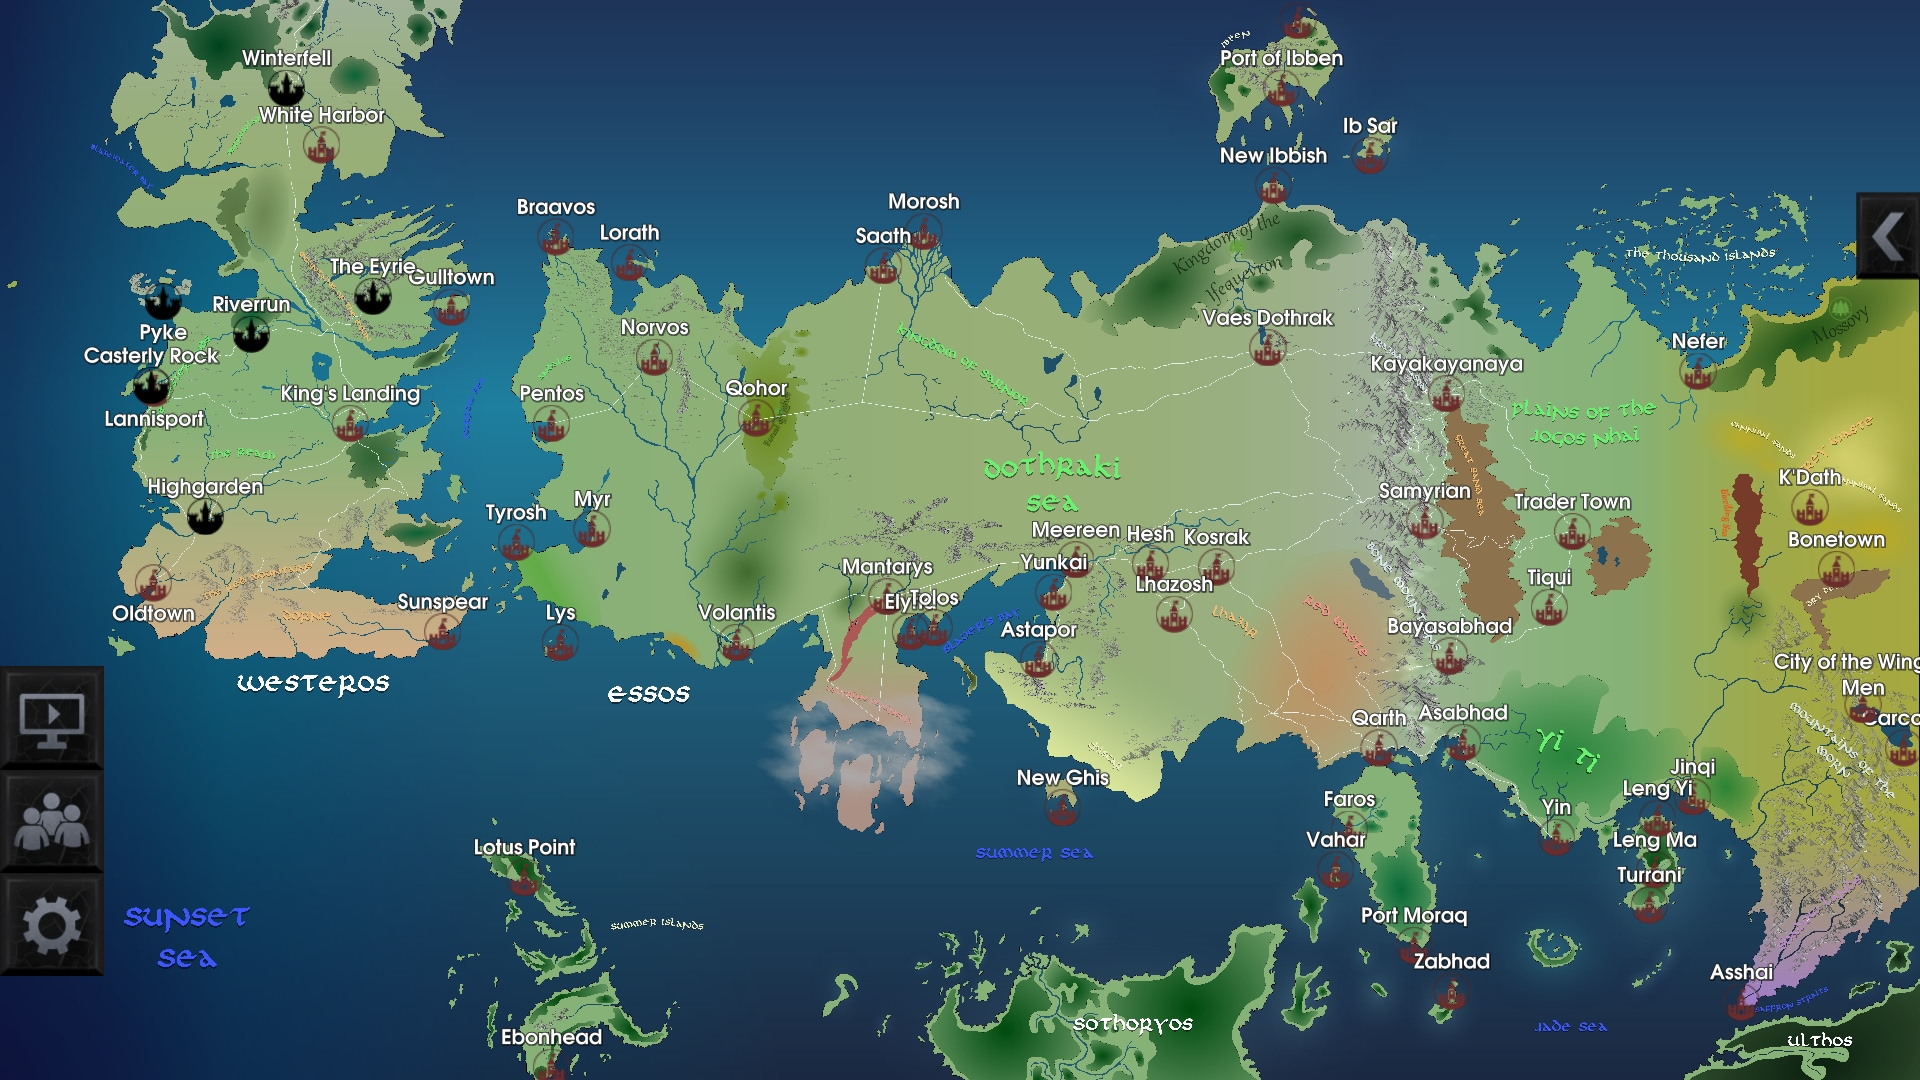 La mappa di Game of Thrones in un 39 app MobileWorld